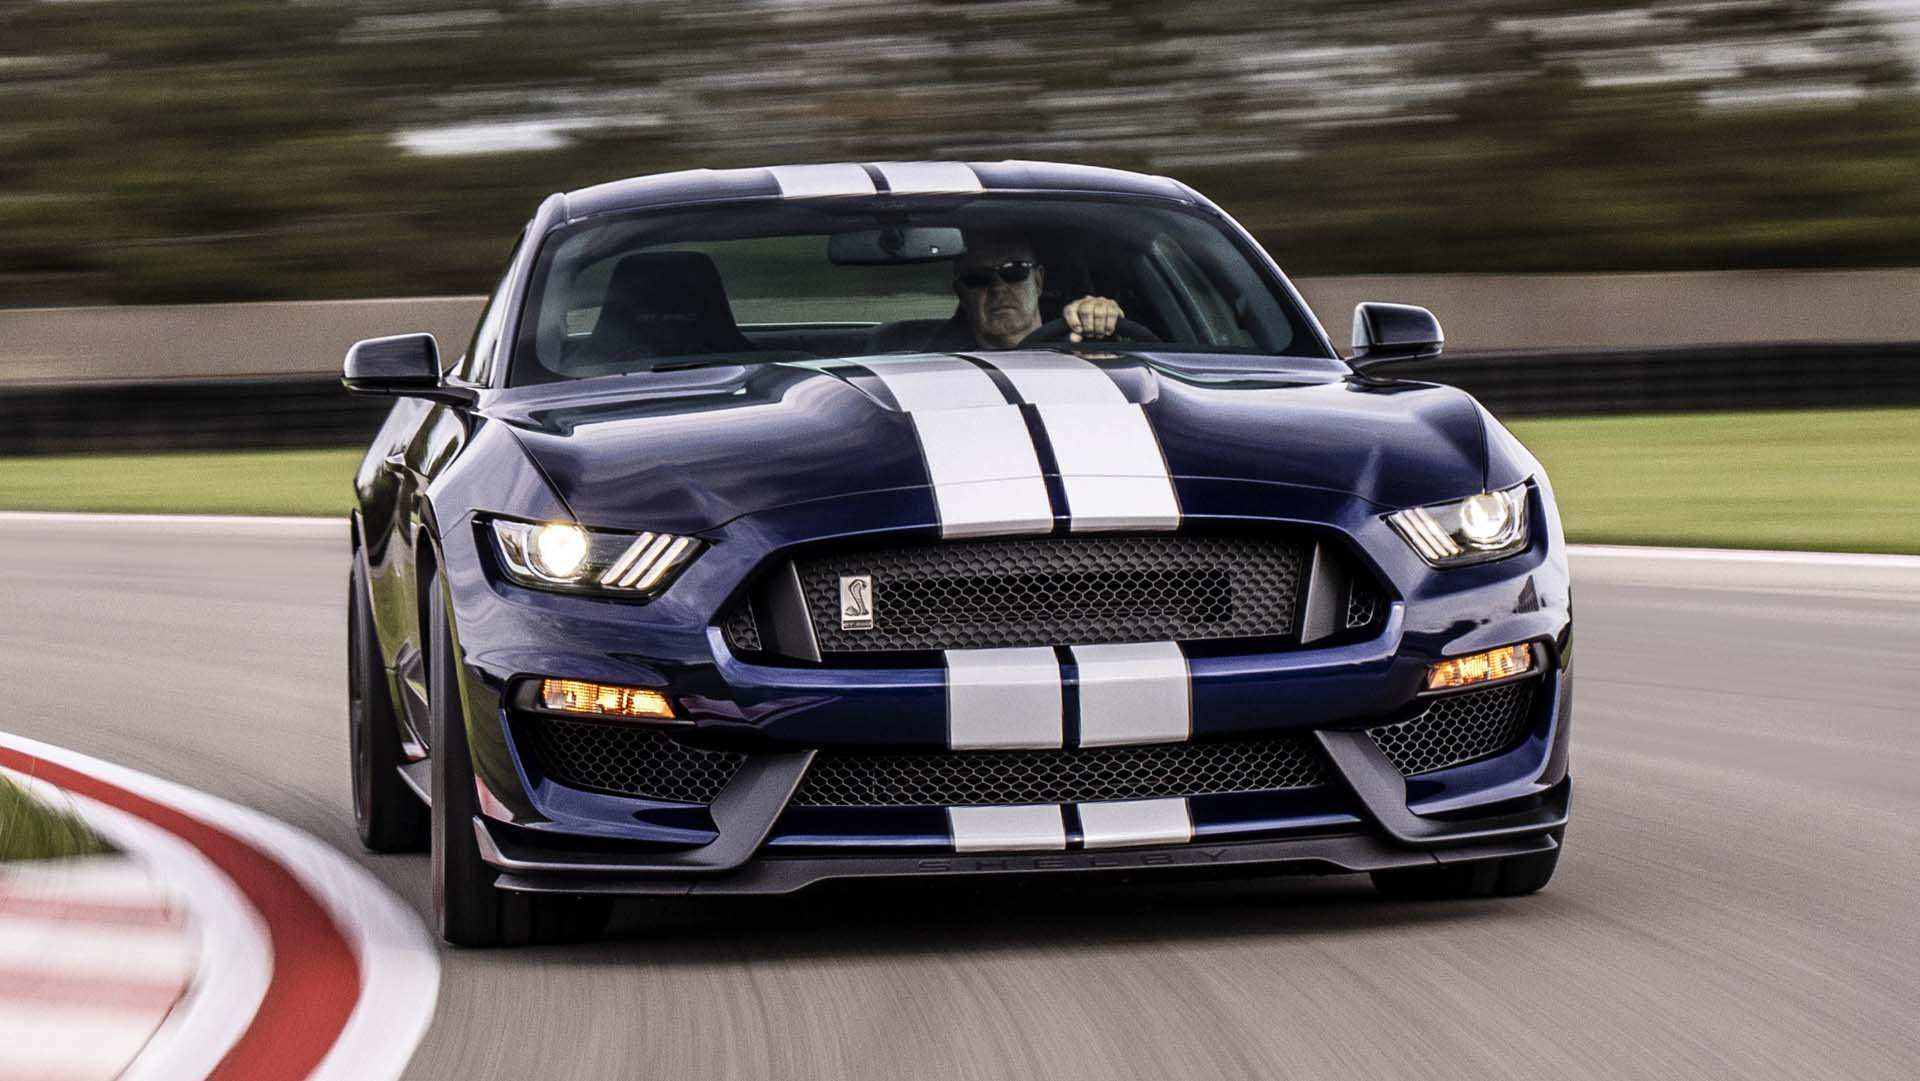 69 All New 2019 Ford Mustang Shelby Gt 350 Rumors